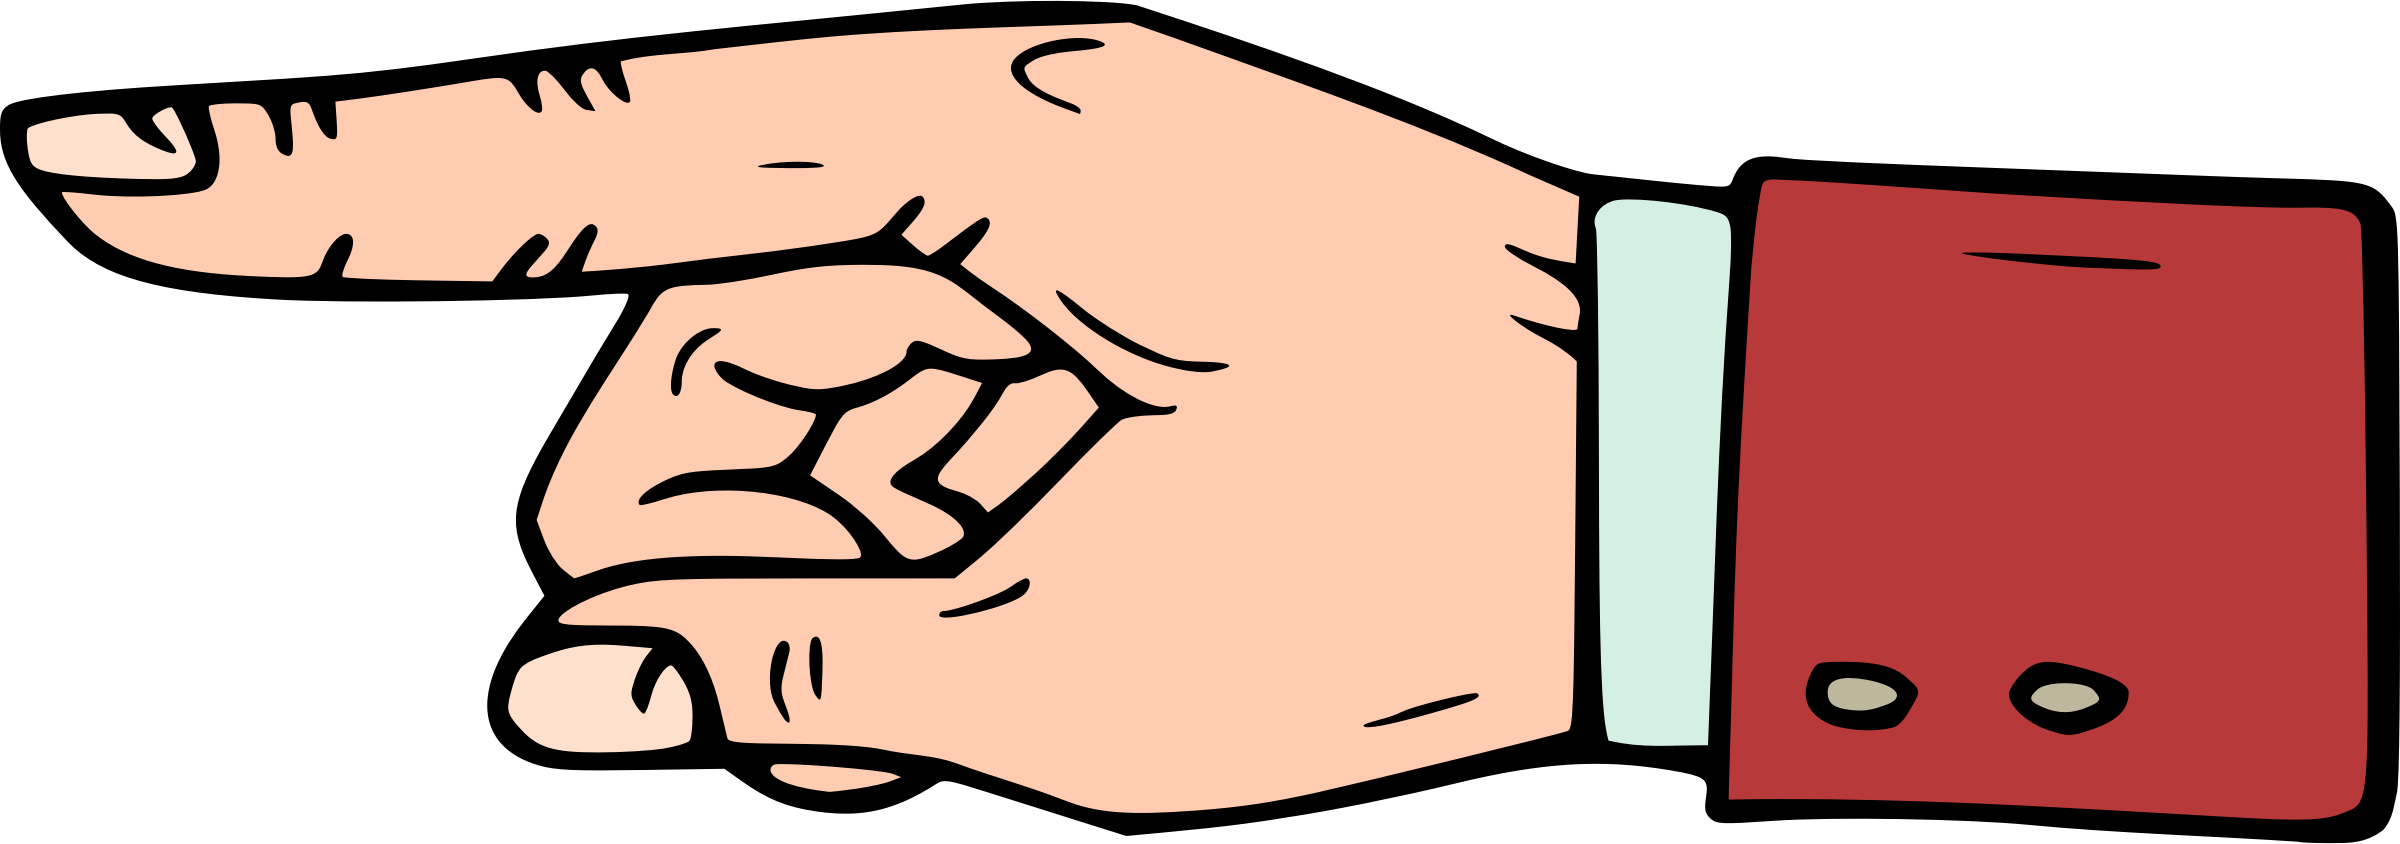 Pointing finger big image. Fingers clipart table